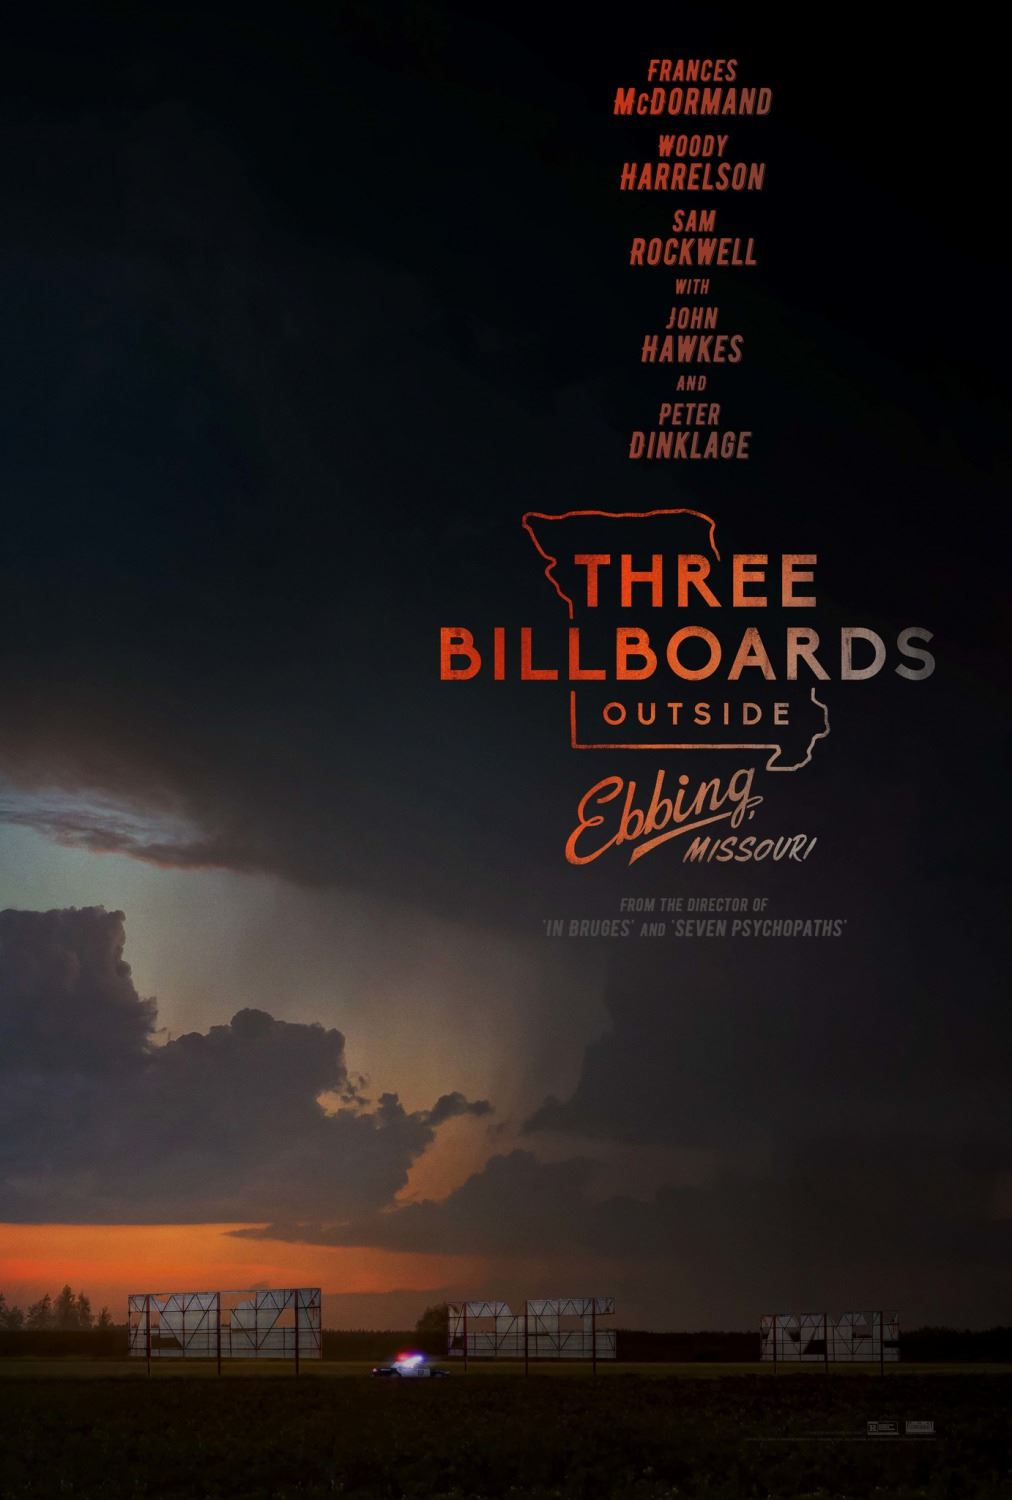 Bio: Three Billboards Outside Ebbing, Missouri